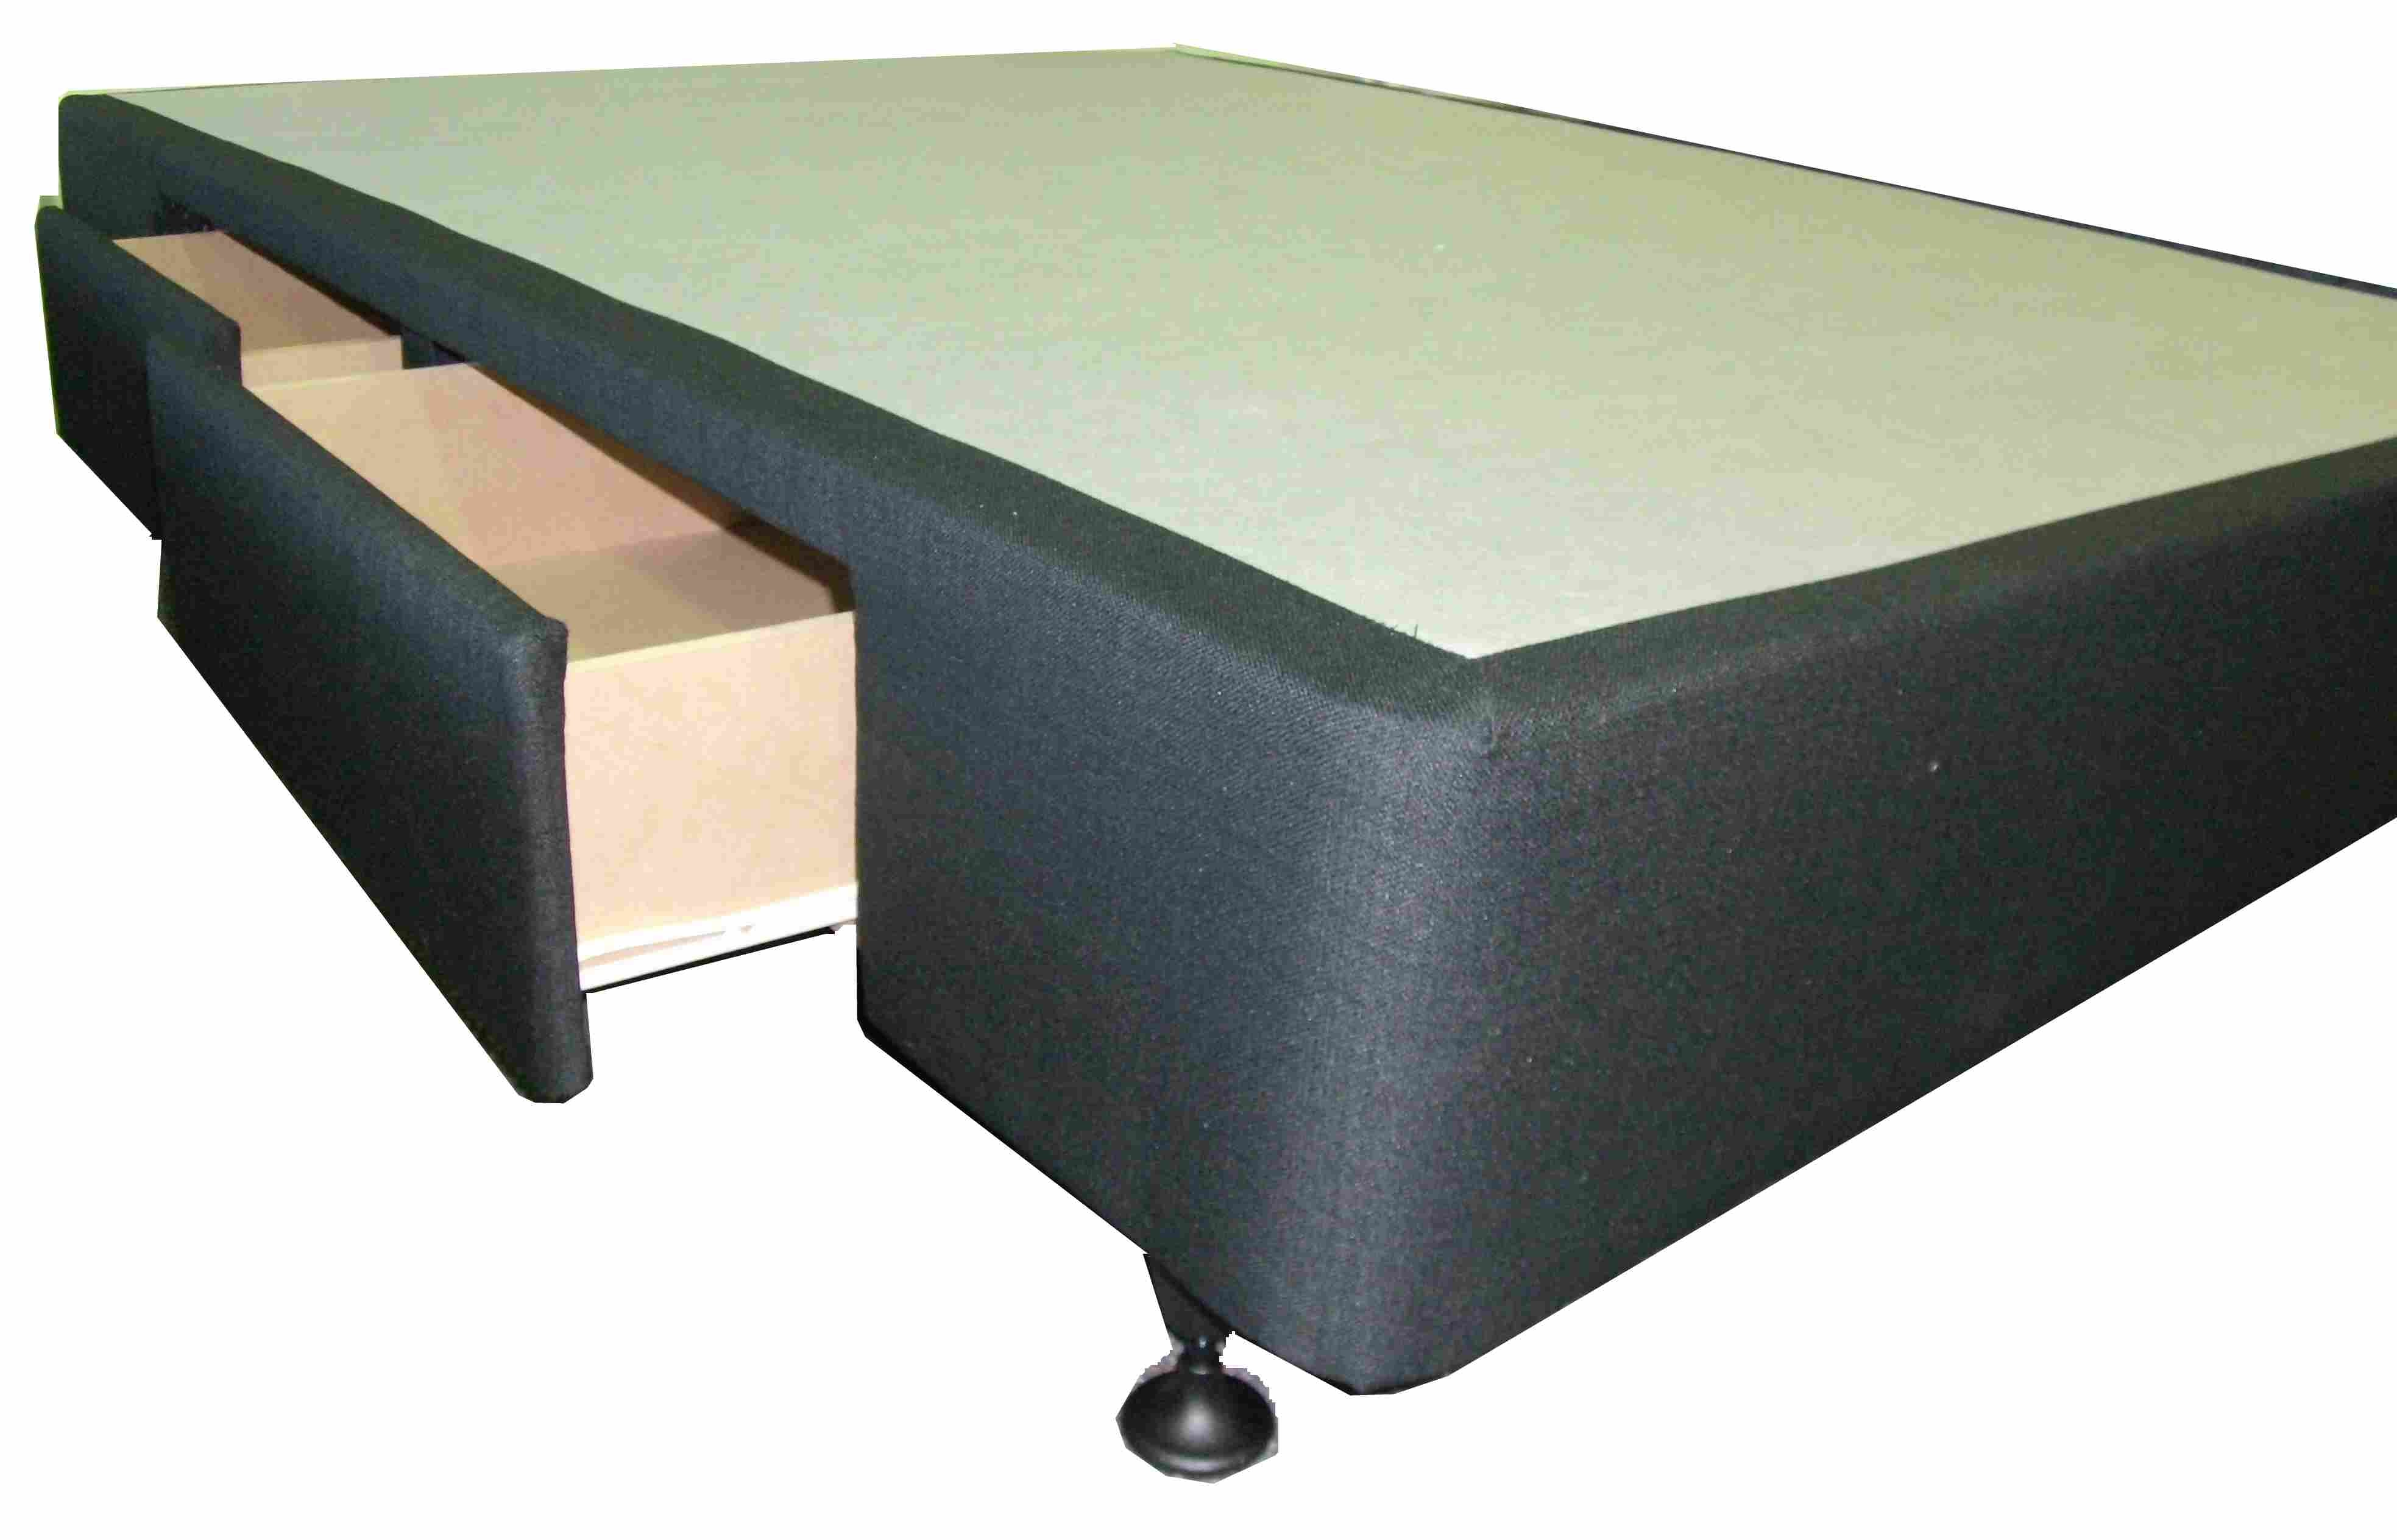 NZ Made Queen Size Split Base with 2 Drawers